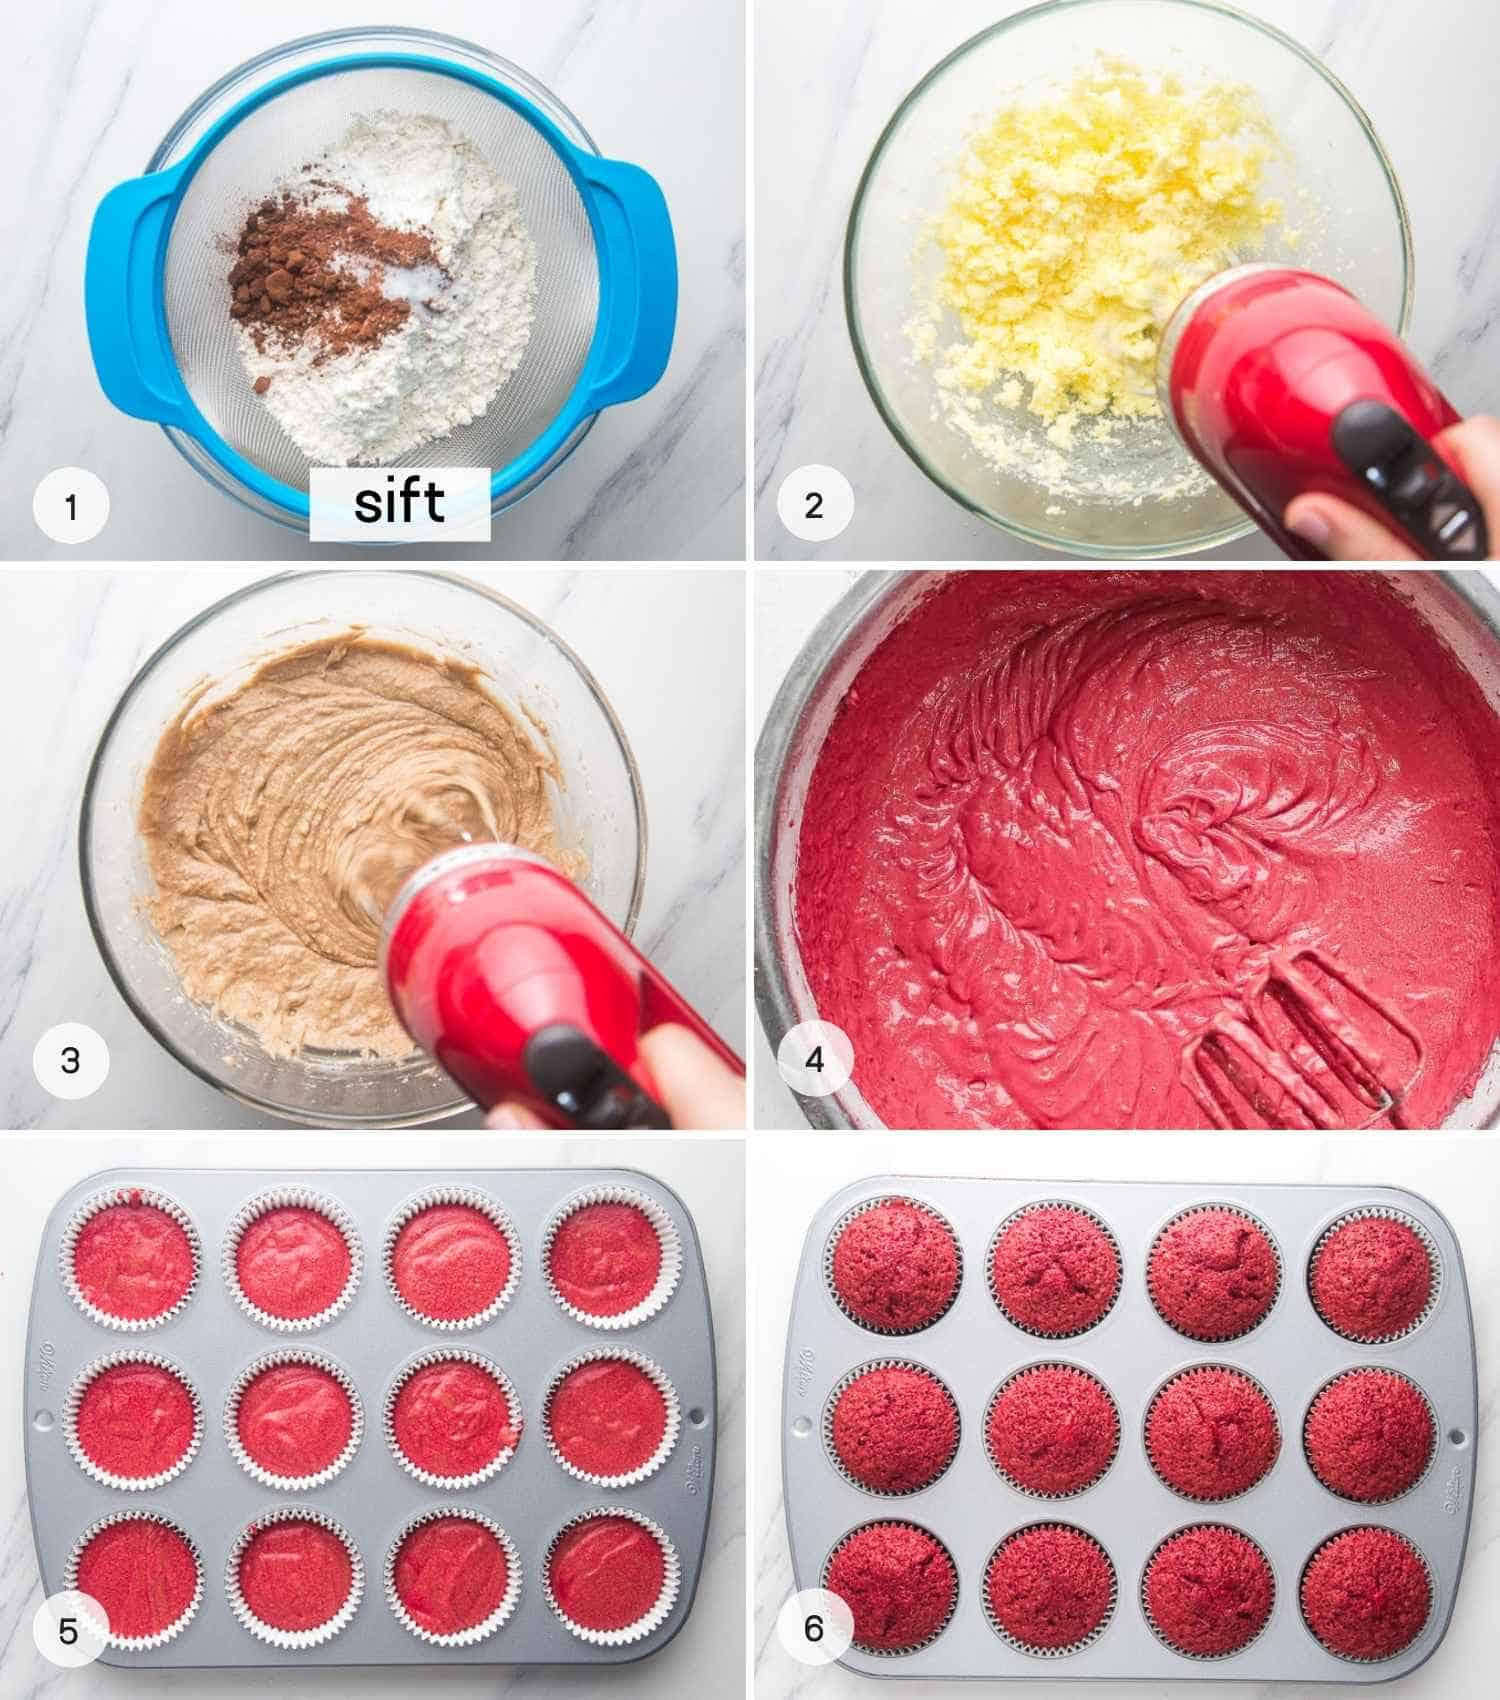 A collage of 6 images on how to bake red velvet cupcakes